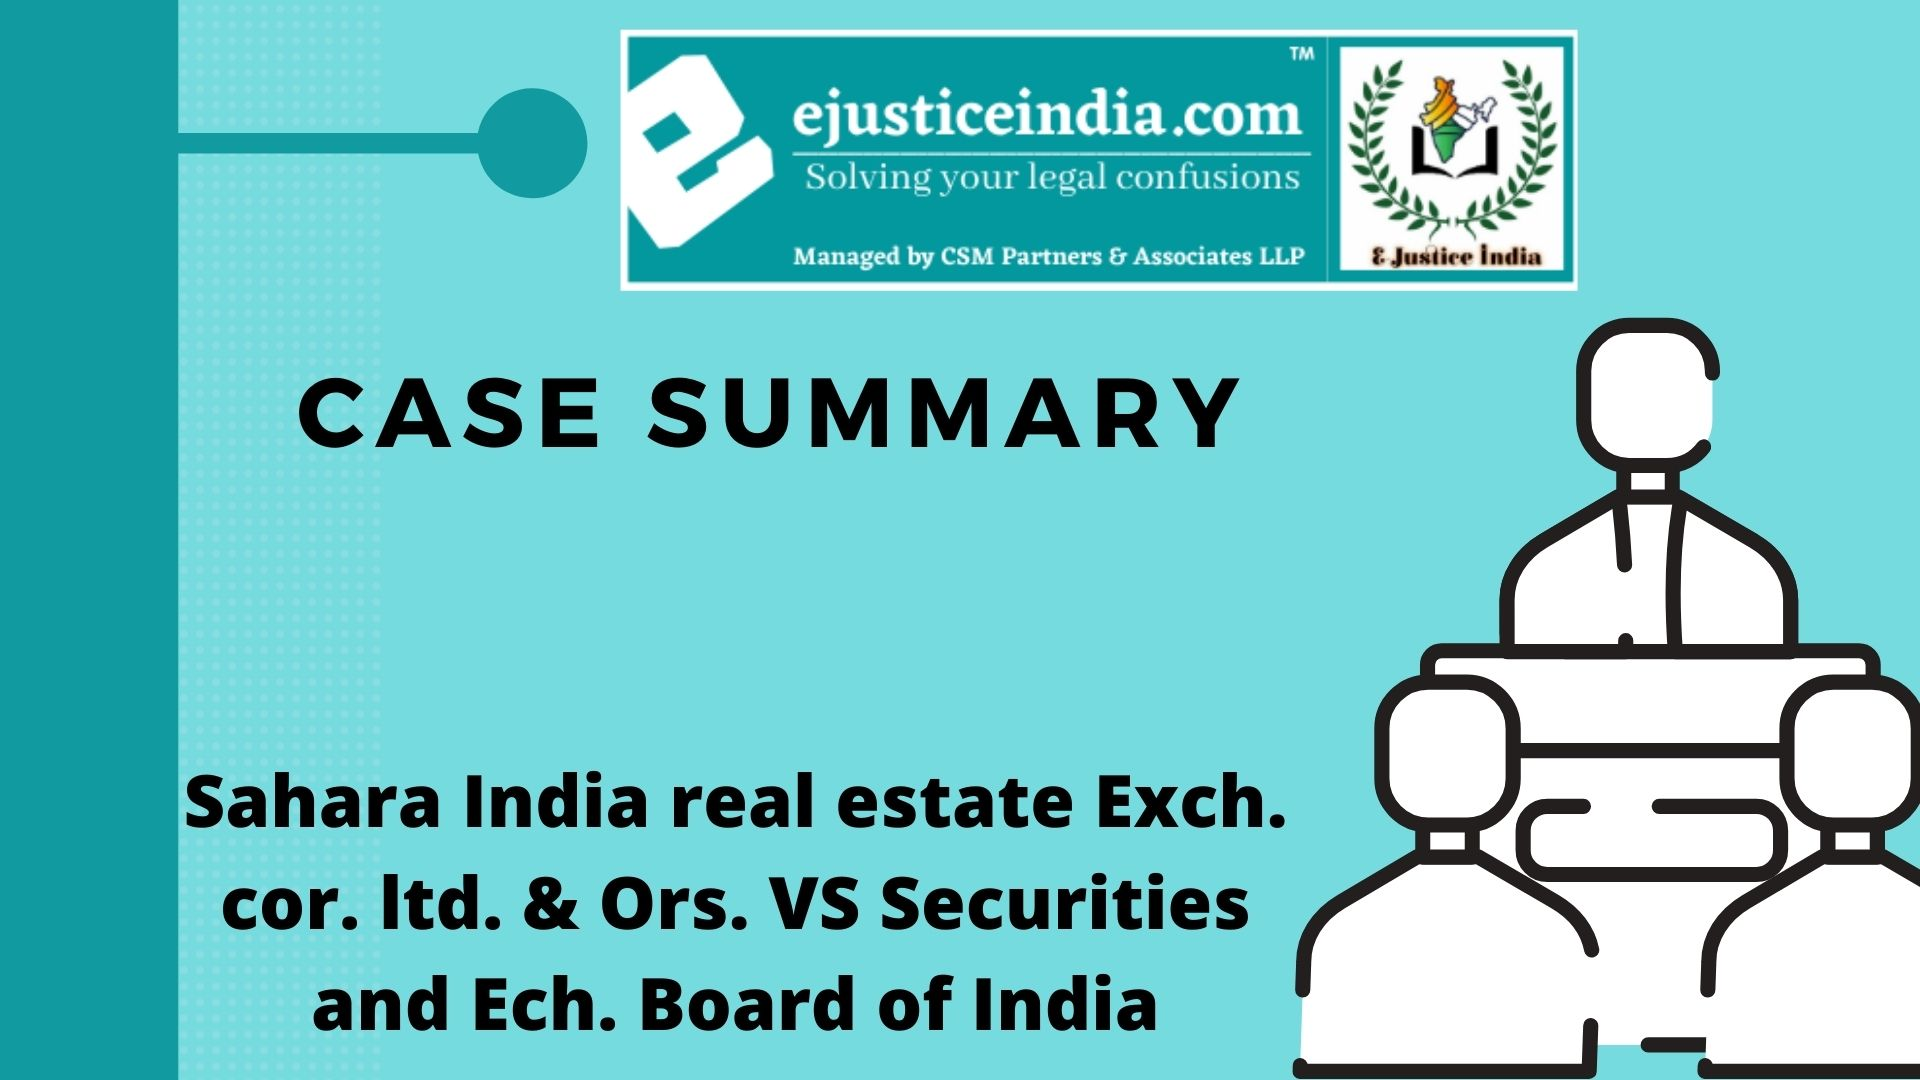 Sahara India real estate Exch. cor. ltd. & Ors. VS Securities and Ech. Board of India